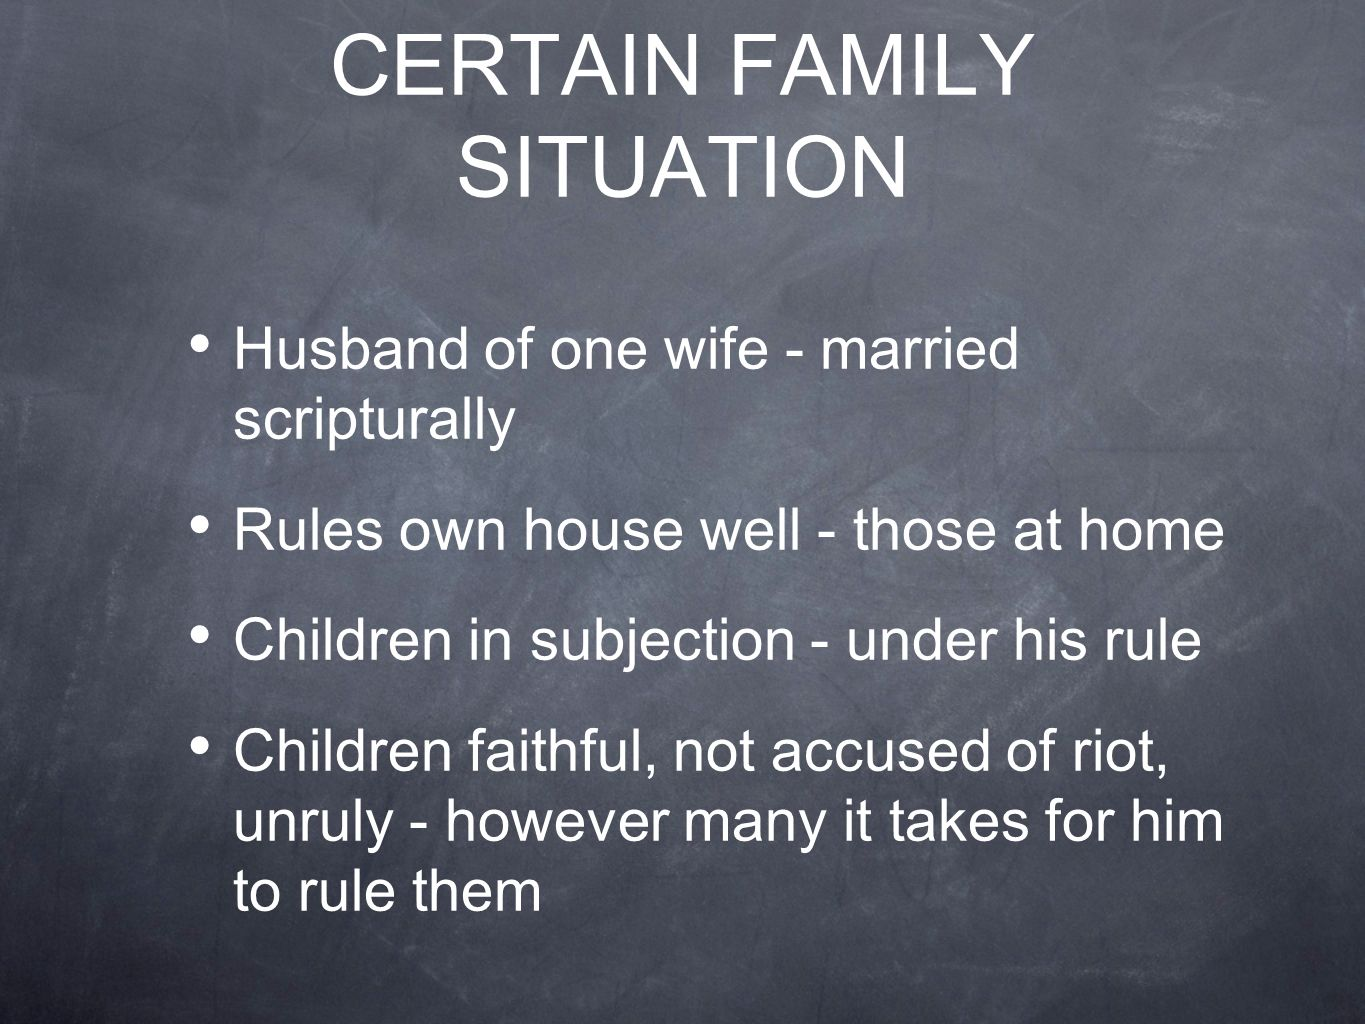 CERTAIN FAMILY SITUATION Husband of one wife - married scripturally Rules own house well - those at home Children in subjection - under his rule Children faithful, not accused of riot, unruly - however many it takes for him to rule them